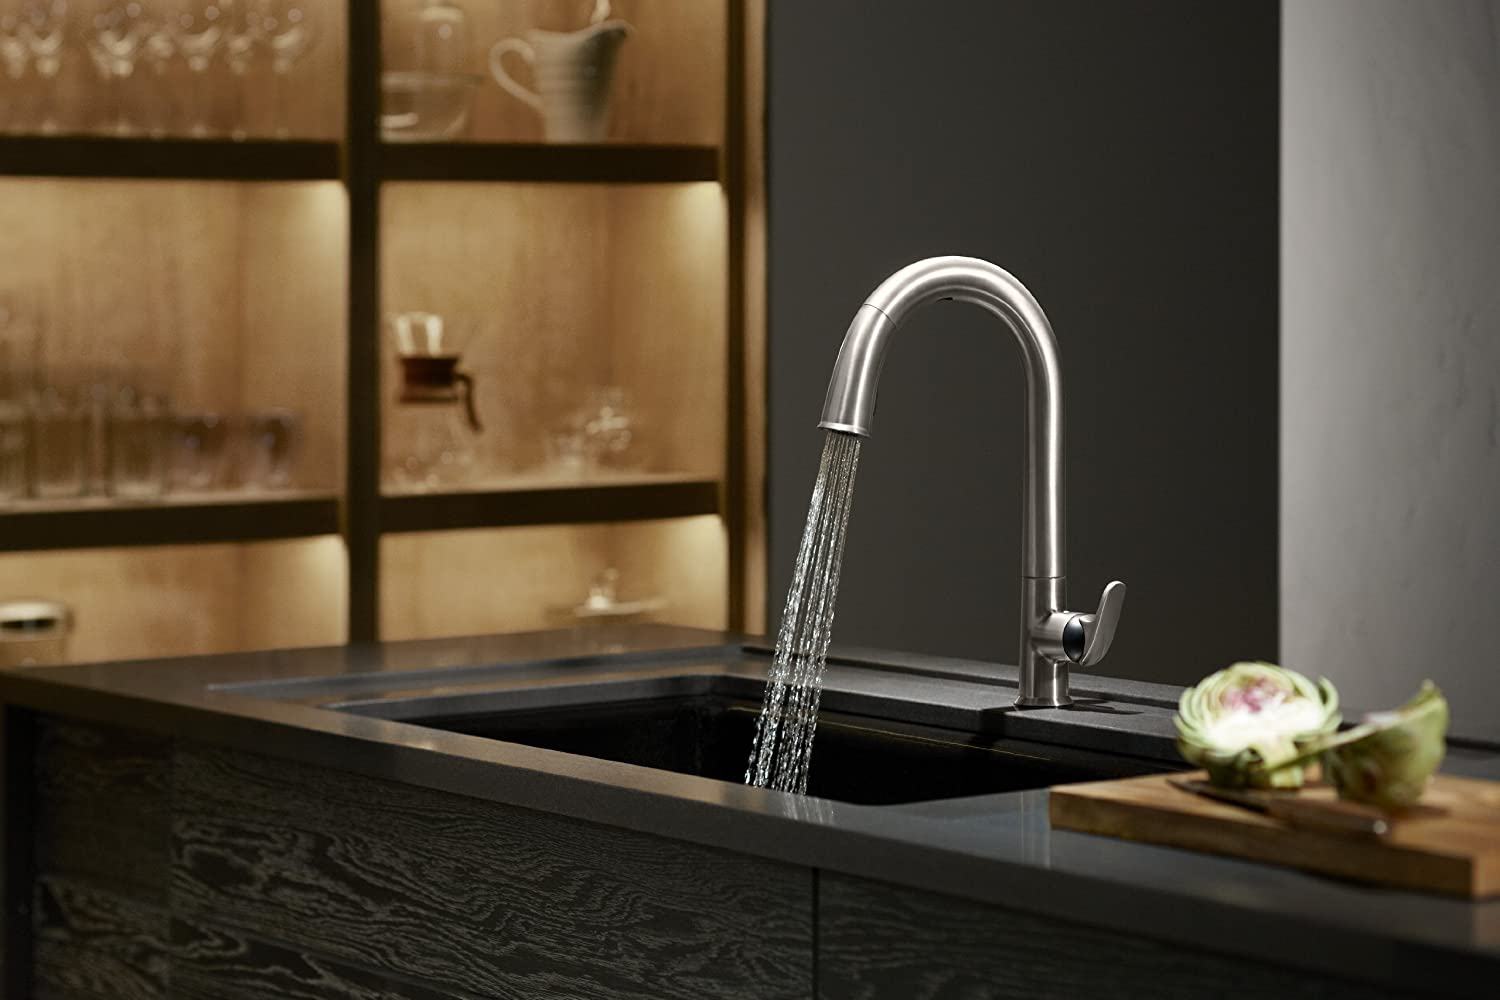 KOHLER K-72218 Sensate Touchless Kitchen Faucet